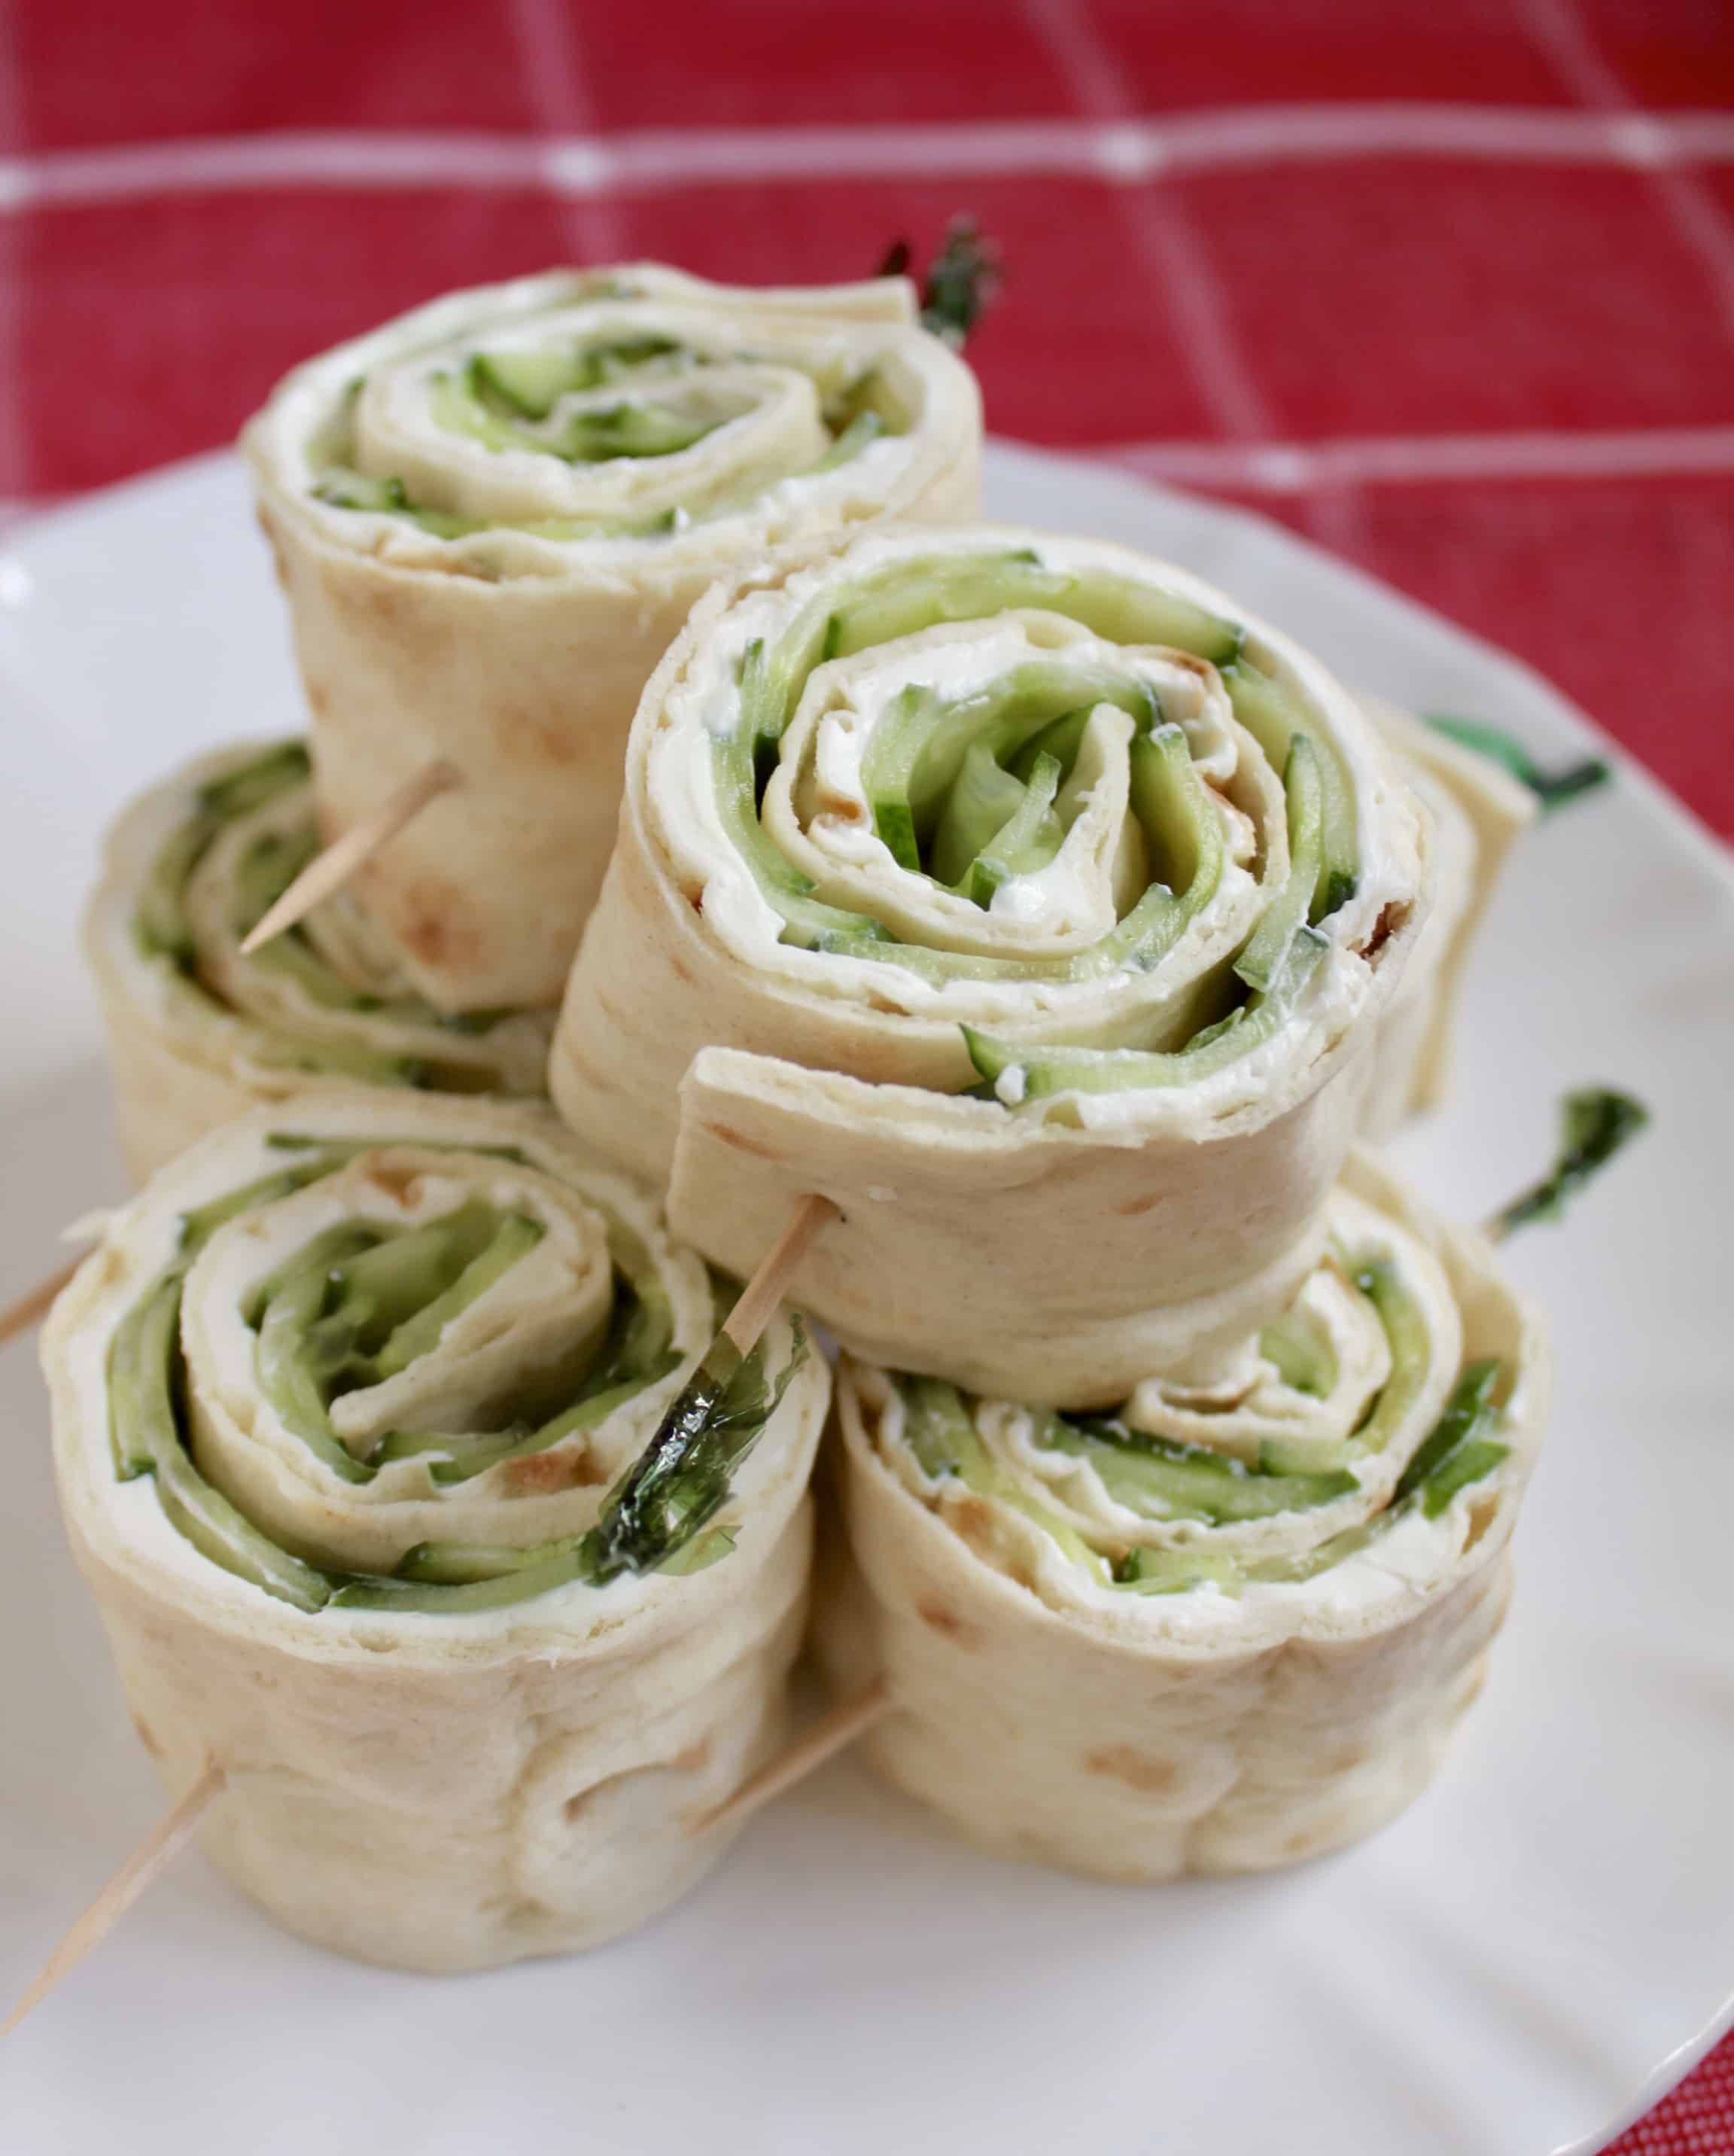 Canapés Wraps Cucumber And Cream Cheese Sandwich Rolls With Lavash Bread